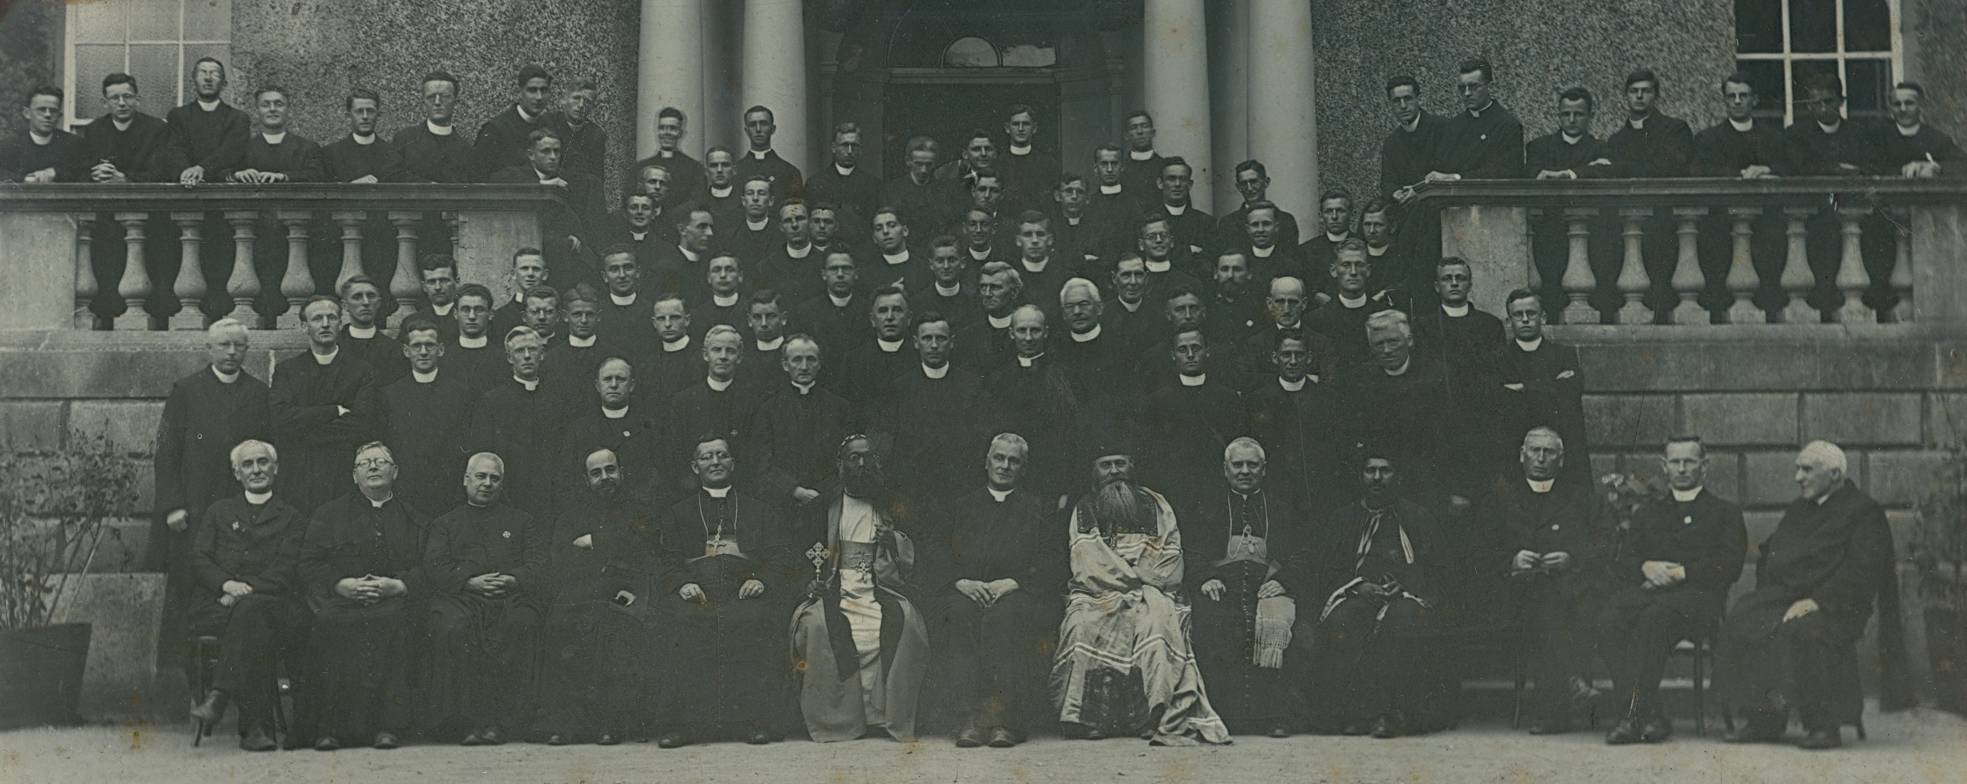 Jesuit community at Rathfarnham Castle, 1932 The Jesuit commnuity at Rathfarnham Castle on the occasion of the International Eucharistic Congress. Includes: Fr. T.V. Nolan SJ (Rector) and Irish Jesuits resident at Rathfarnham with guests; Mar Ivanios, Archbishop of Trivandrum, India; Bucys, Bishop of Olympus; Broderick, Bishop Peduelli; Trurita y Alumandos, Bishop of Barcelona; Rector of the Armenian Mission in Paris and Fr. Griffith, Vancouver. Rev. D.D. Ivanios and Bucys celebrated massess according to their respective Eastern rites in the chapel at Rathfarnham. FM/RATH/71. Courtesy of the Irish Jesuit Archive.